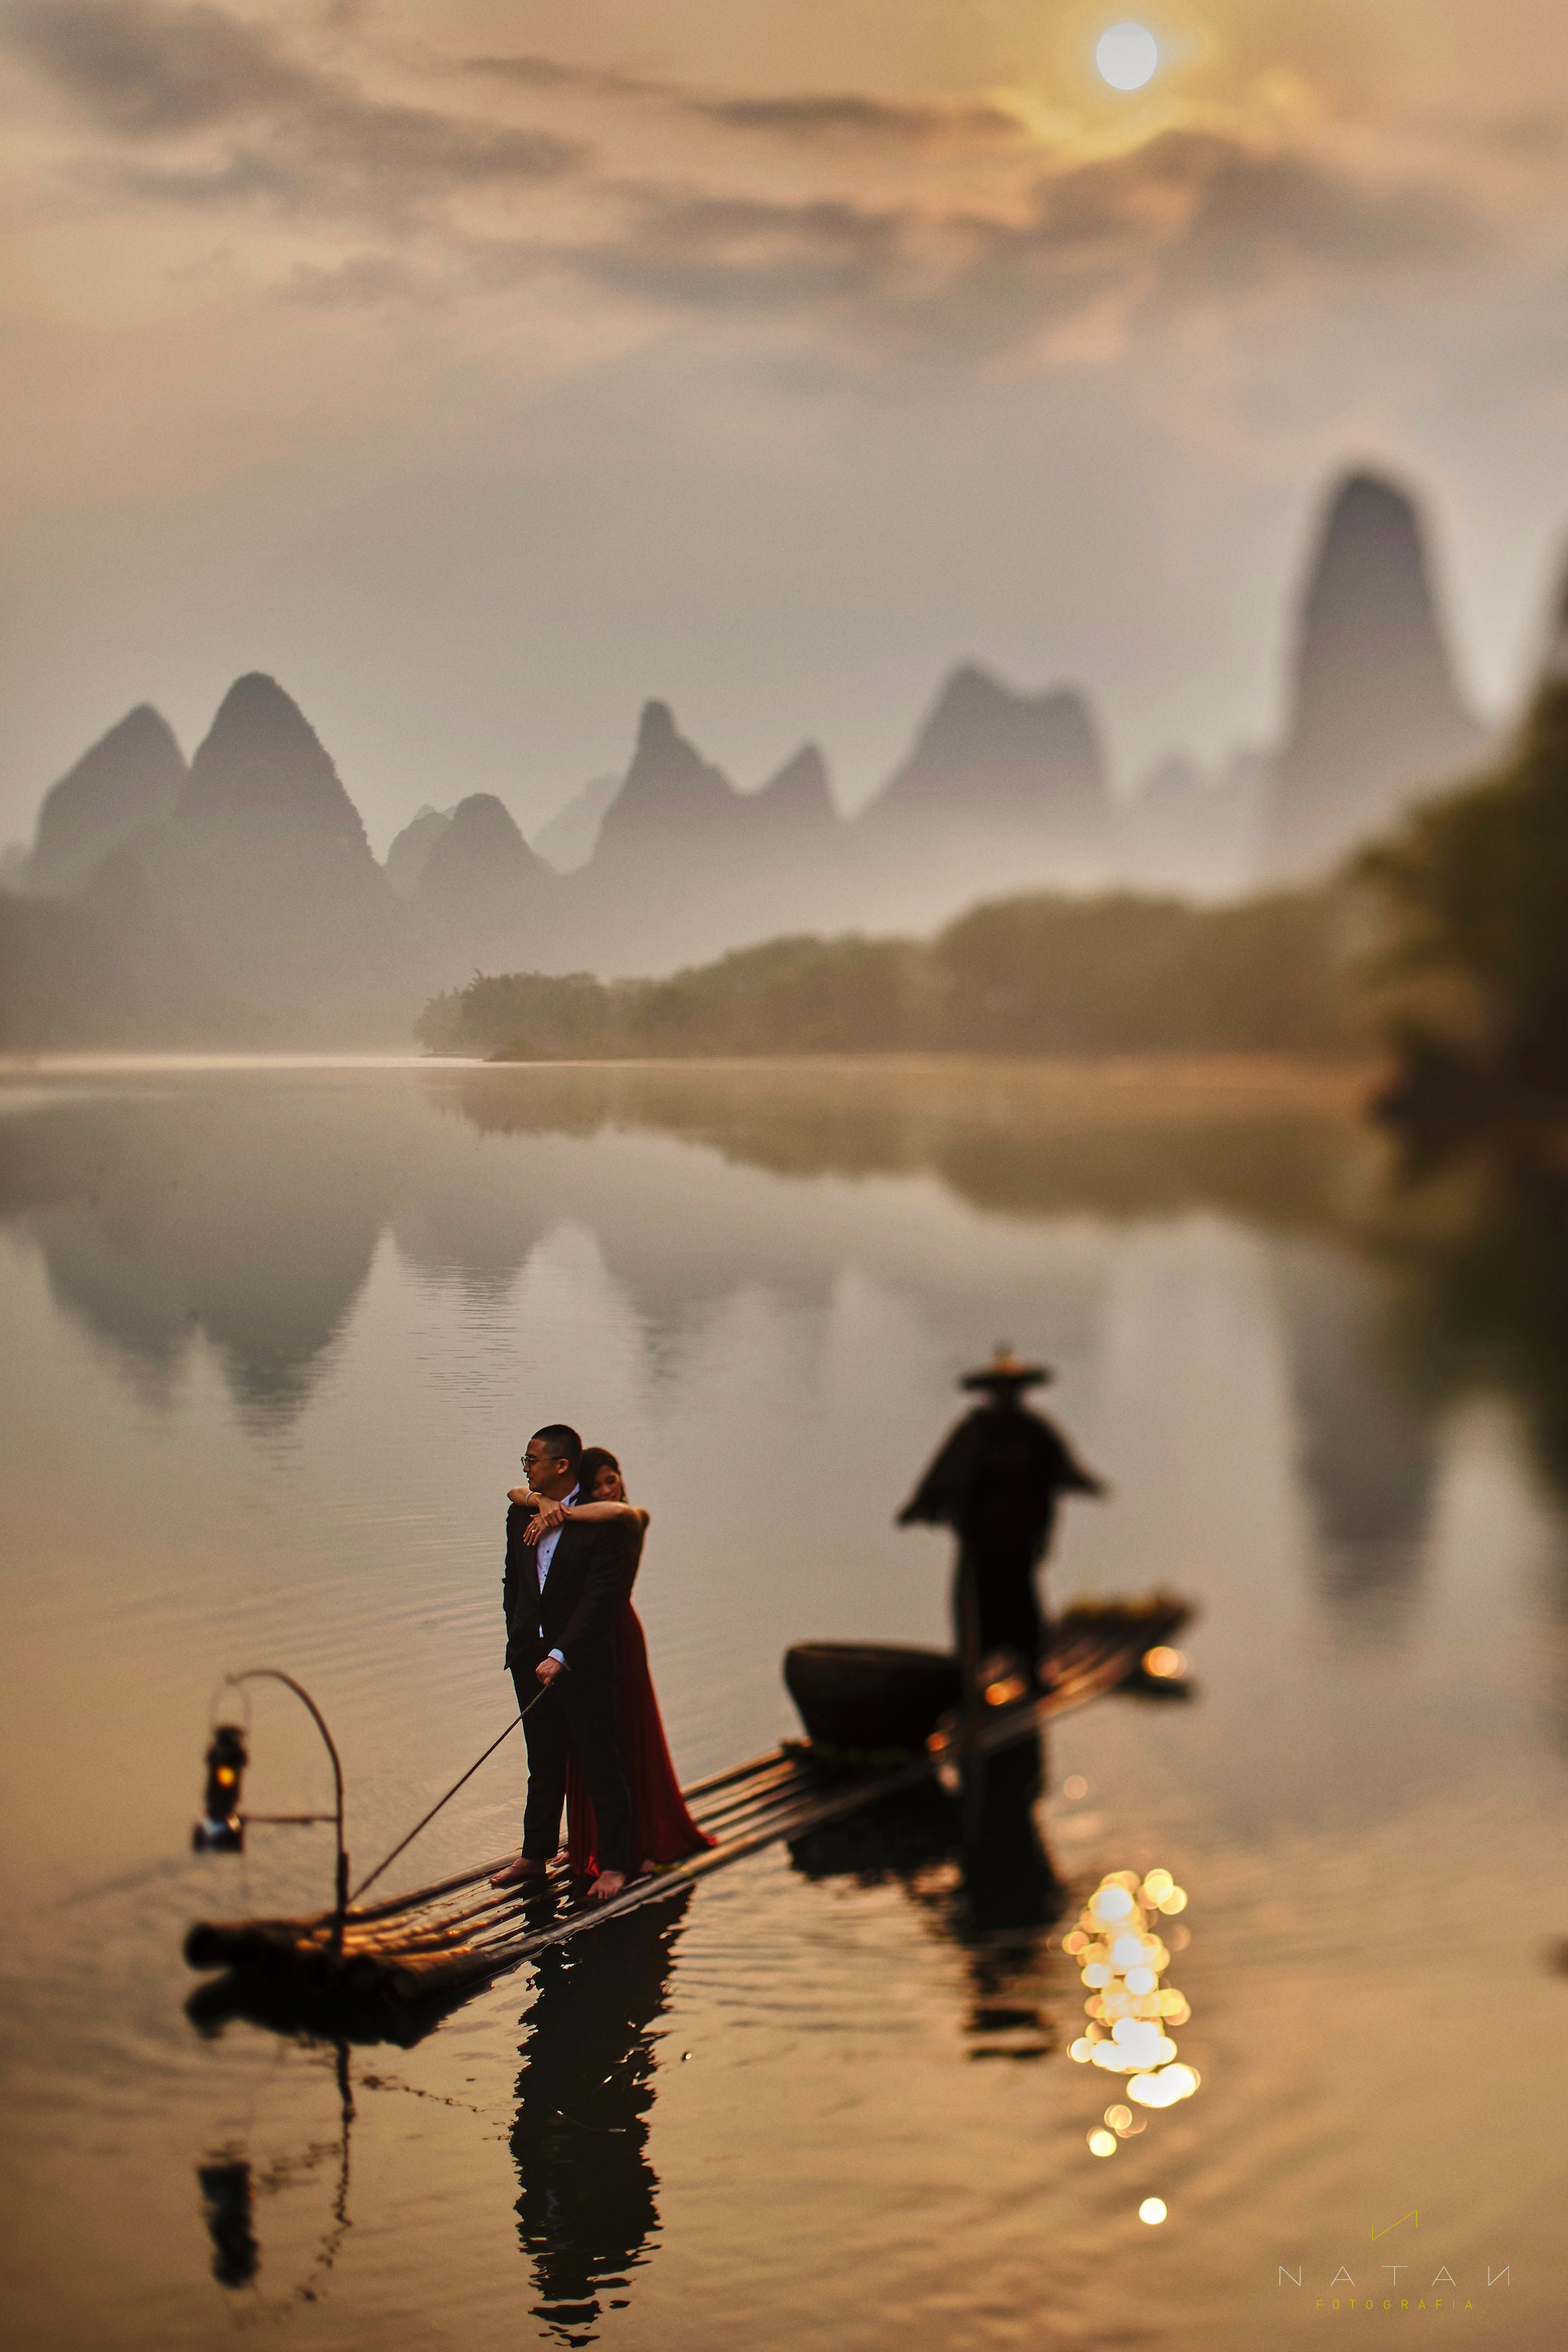 Best China Wedding photographer - Guilin, Yangshuo